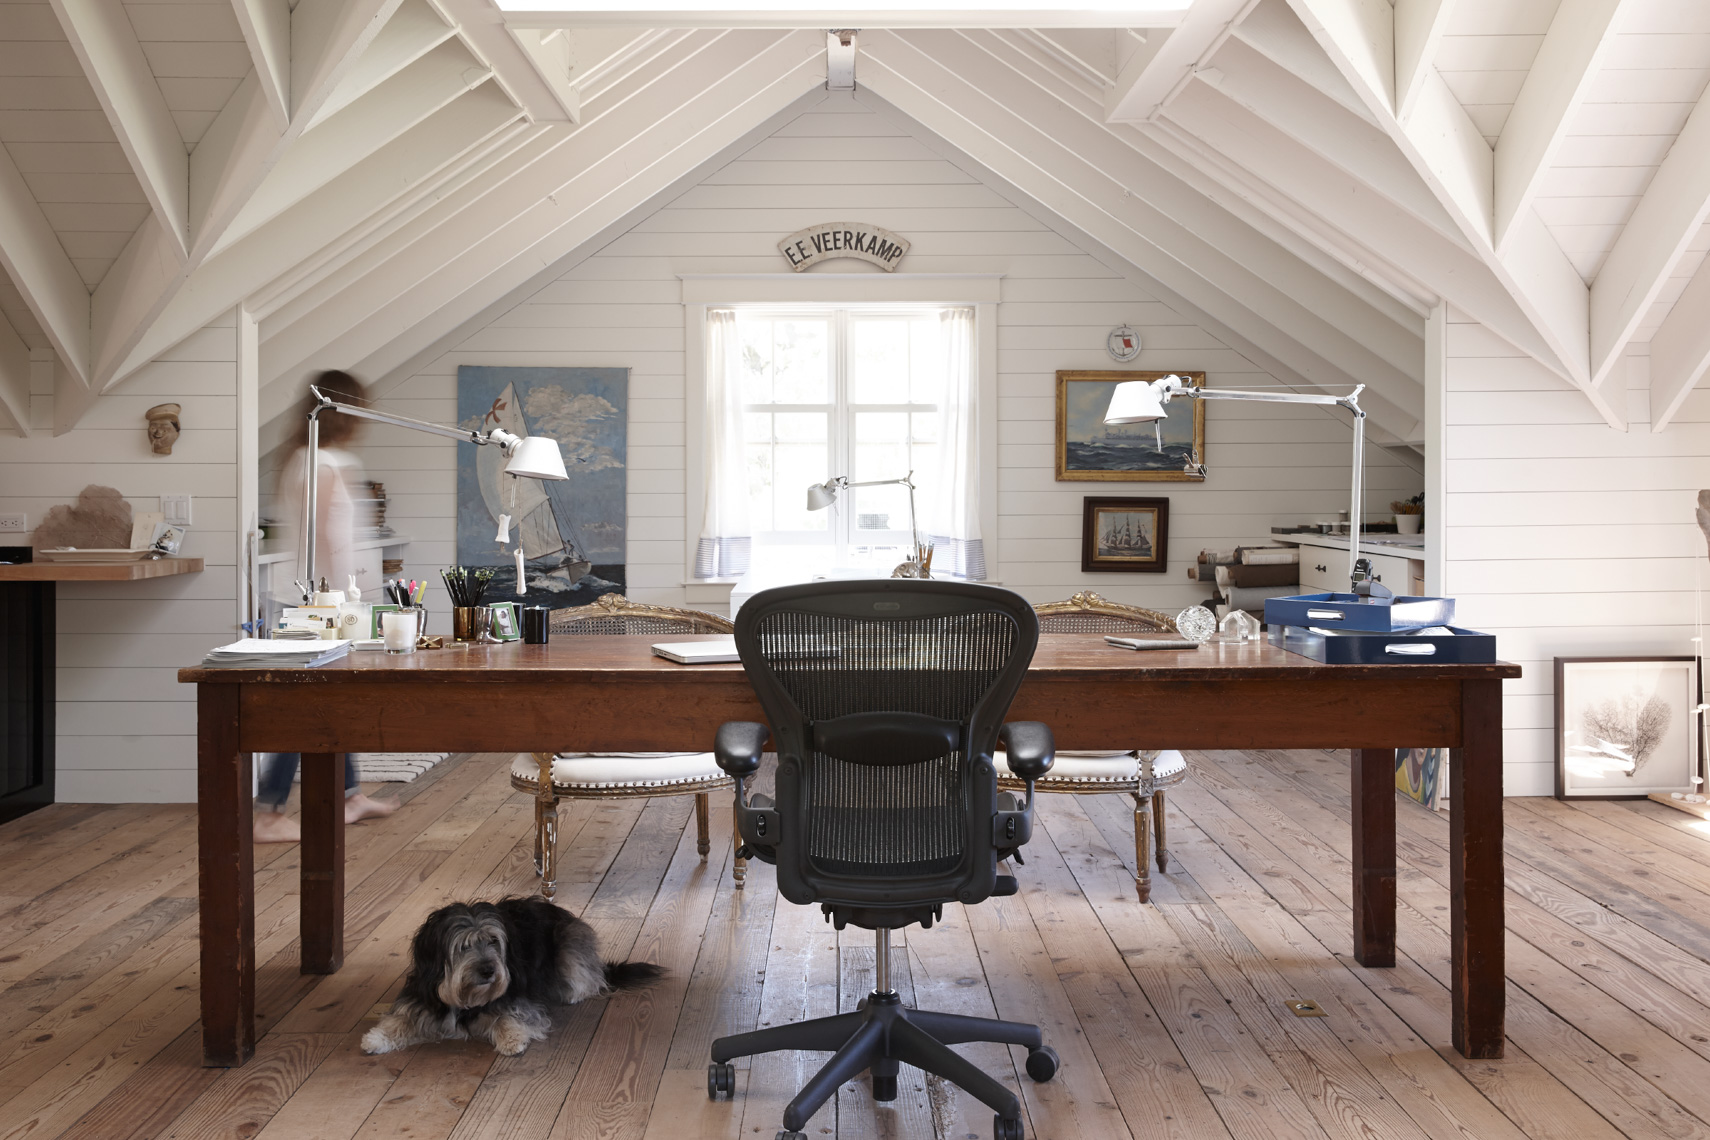 home attic office space with black wheeled chair and a shaggy dog under long wooden table